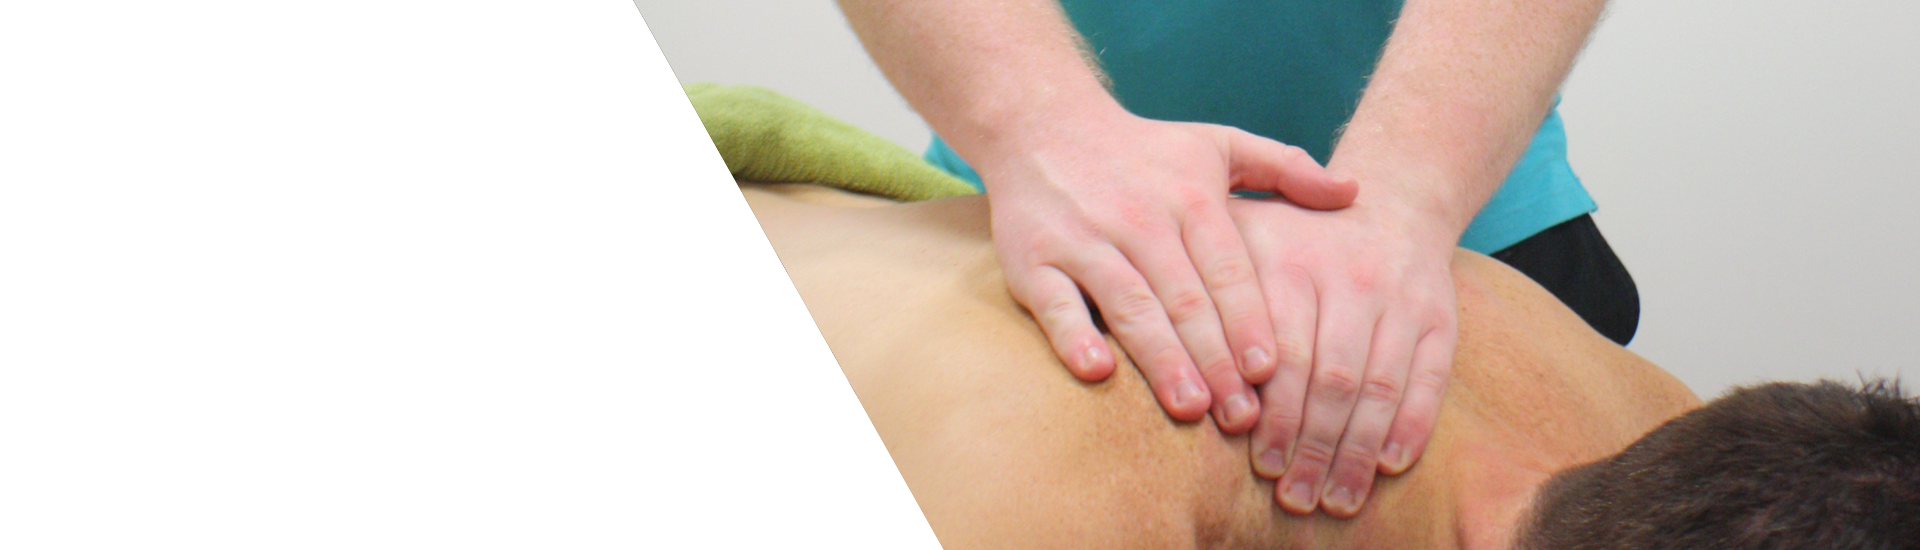 banner-services-myotherapy-3